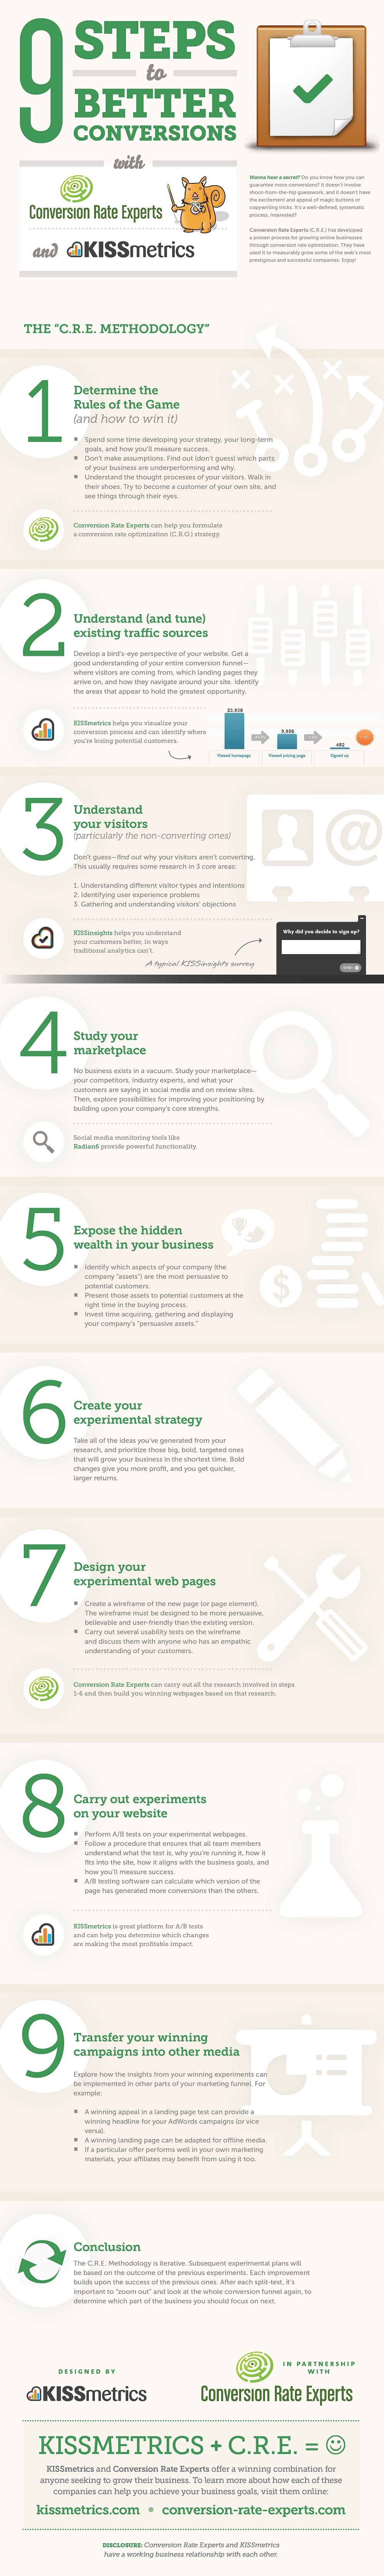 9 Steps to Better Conversions – The C.R.E. Methodology - #infographic